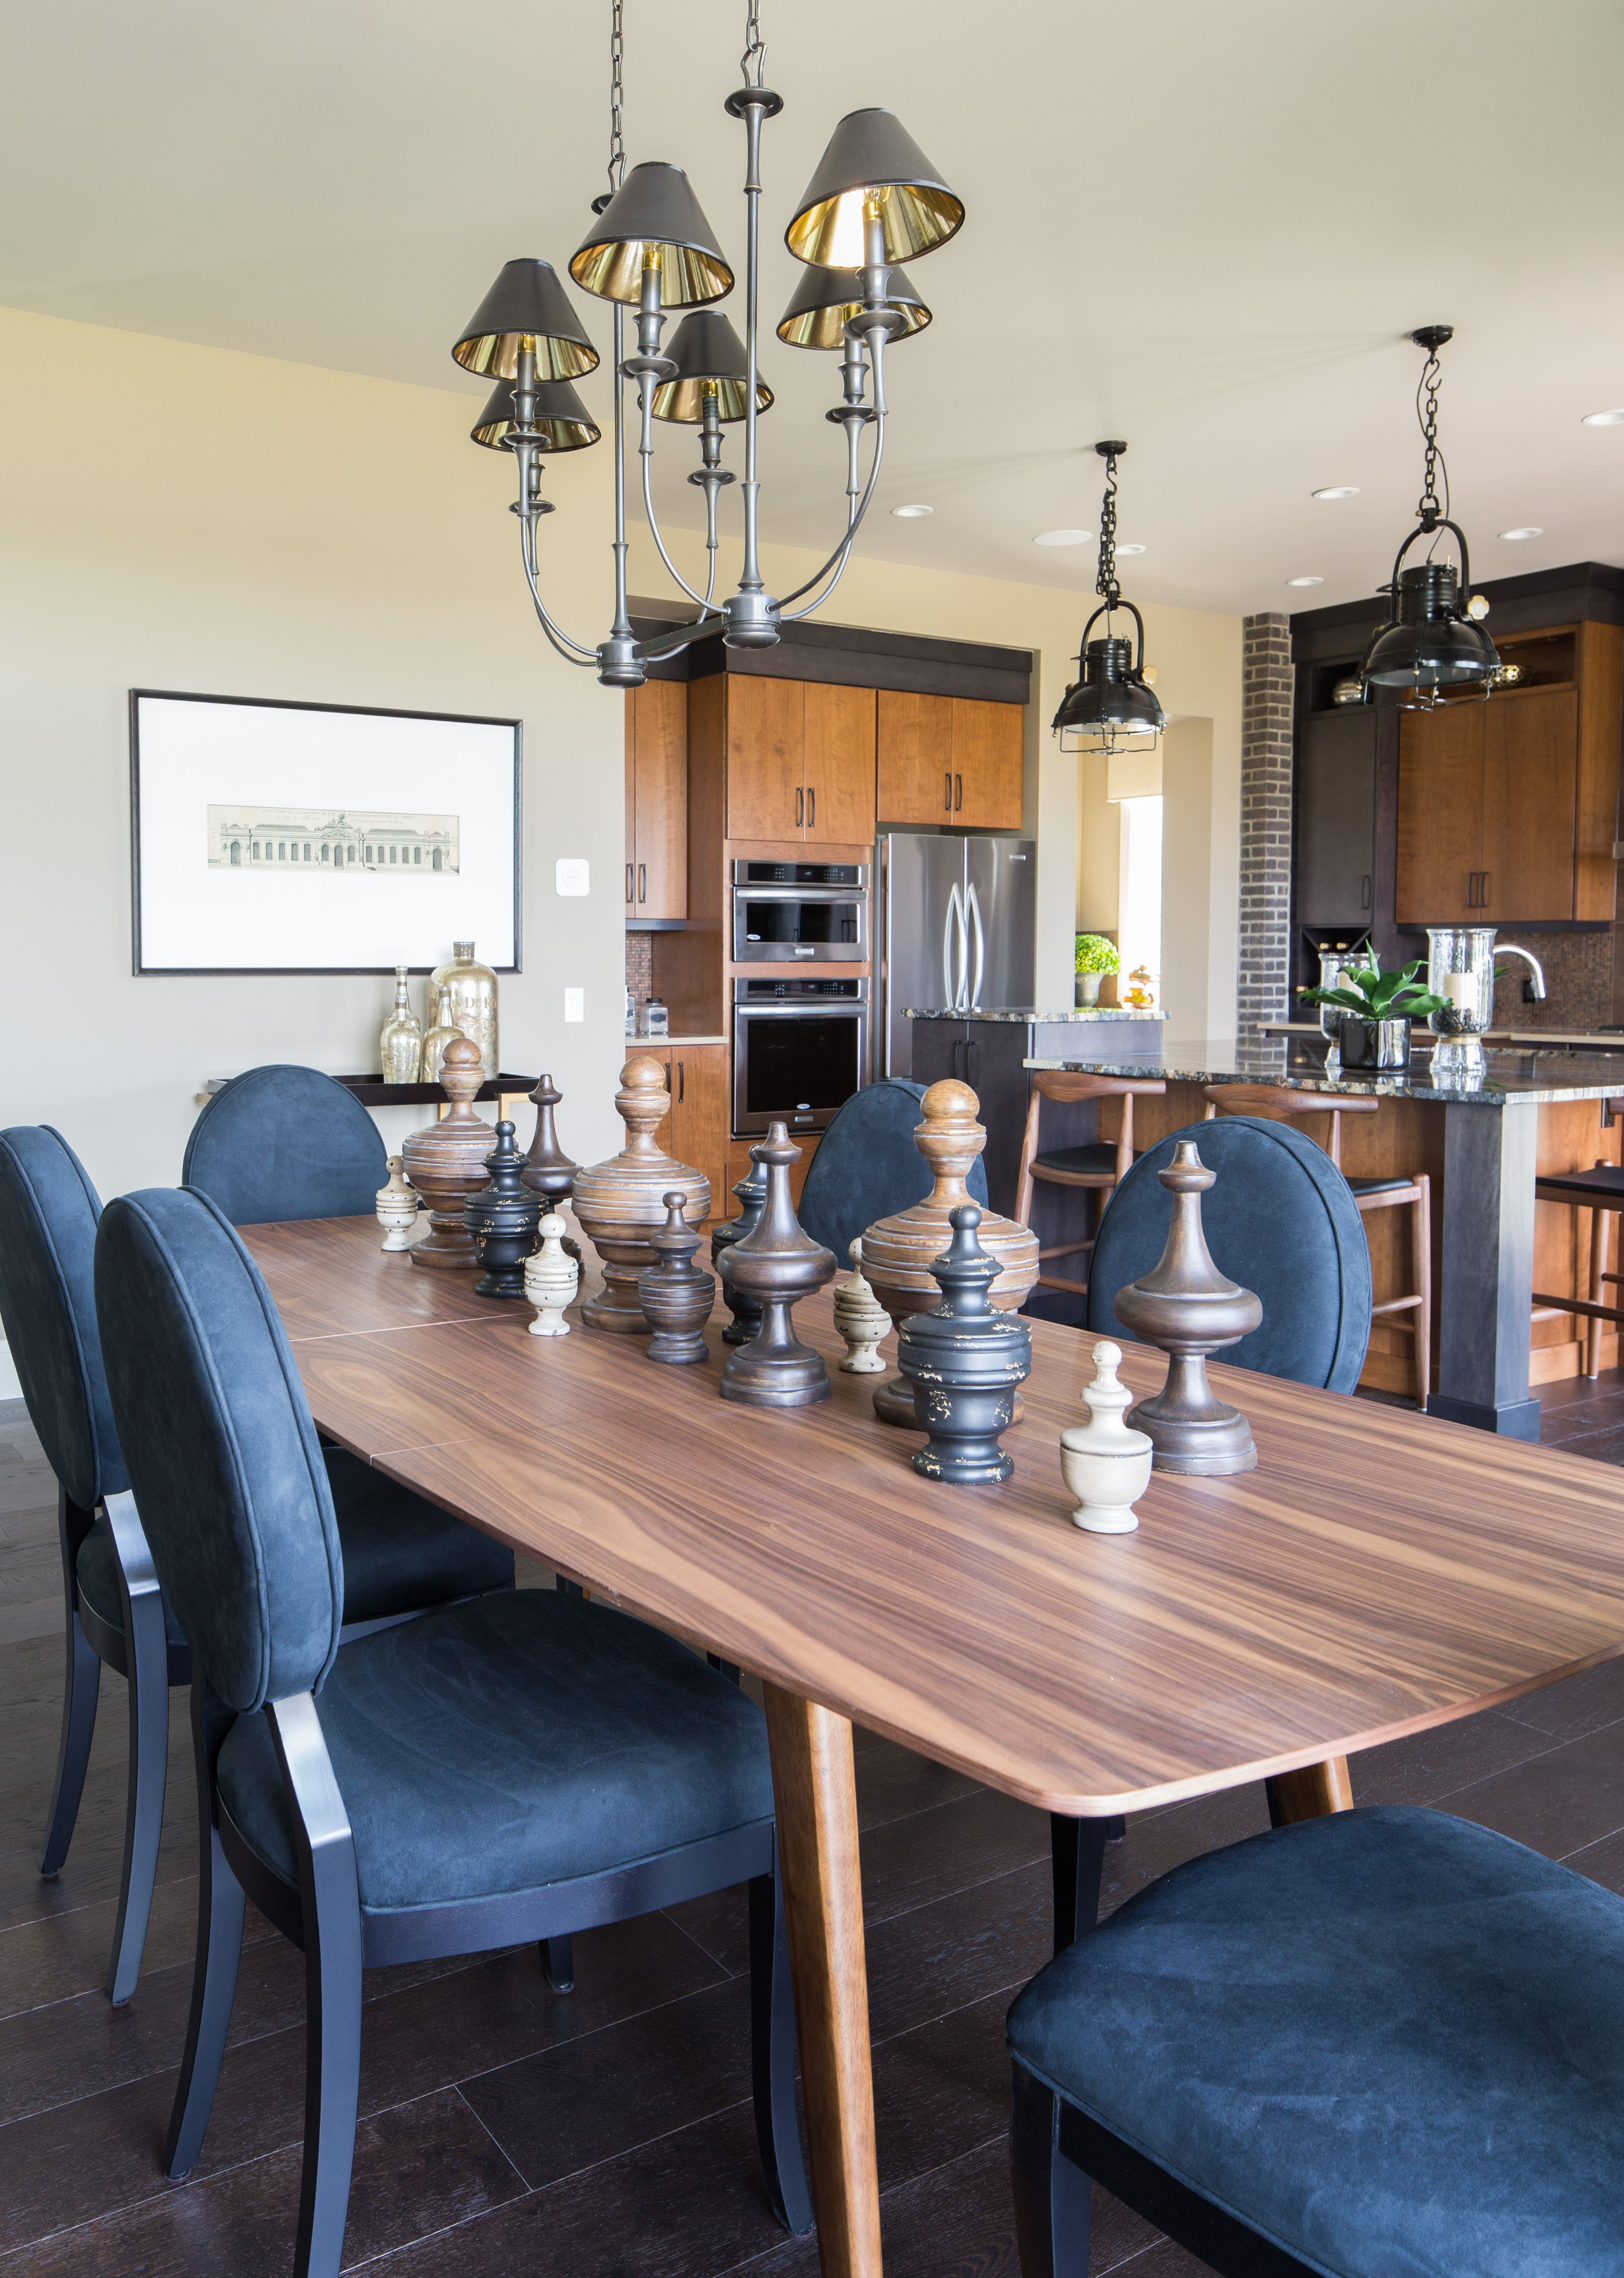 Show home dining rooms dining room design ideas show home dining rooms amazing projects rochelle cotethe dining roomfrom the rochester show design ideas dzzzfo